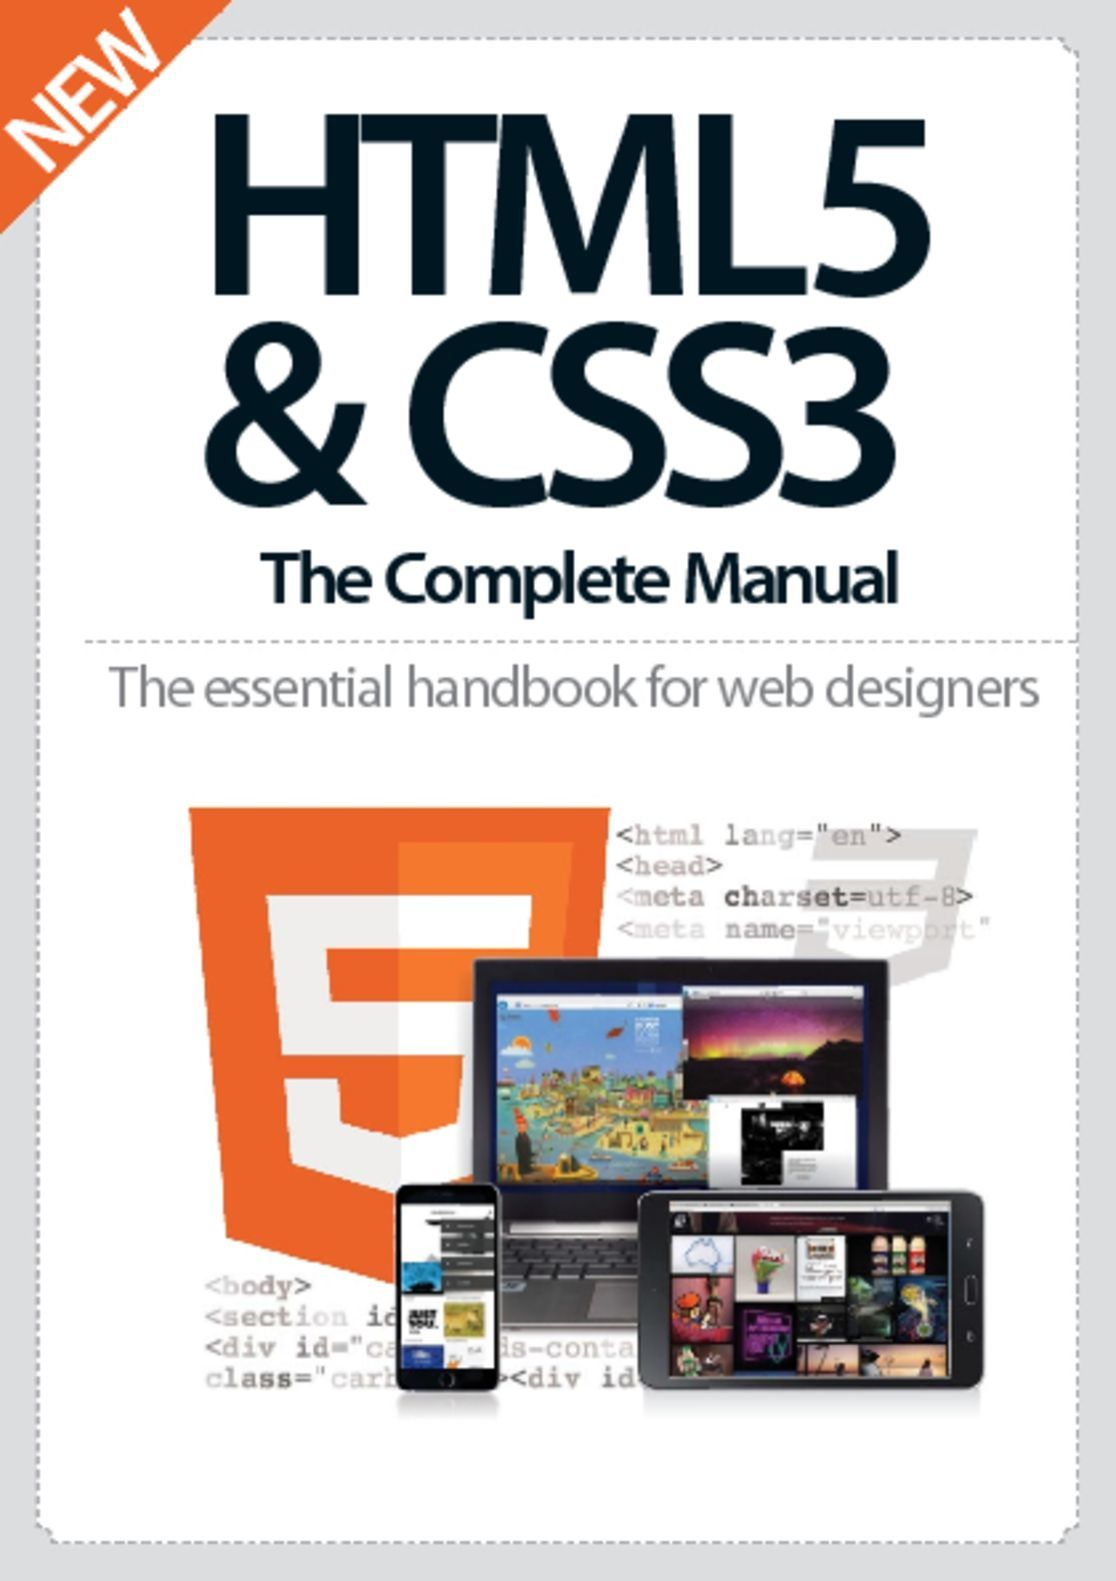 HTML5 CSS3 The Complete Manual Digital